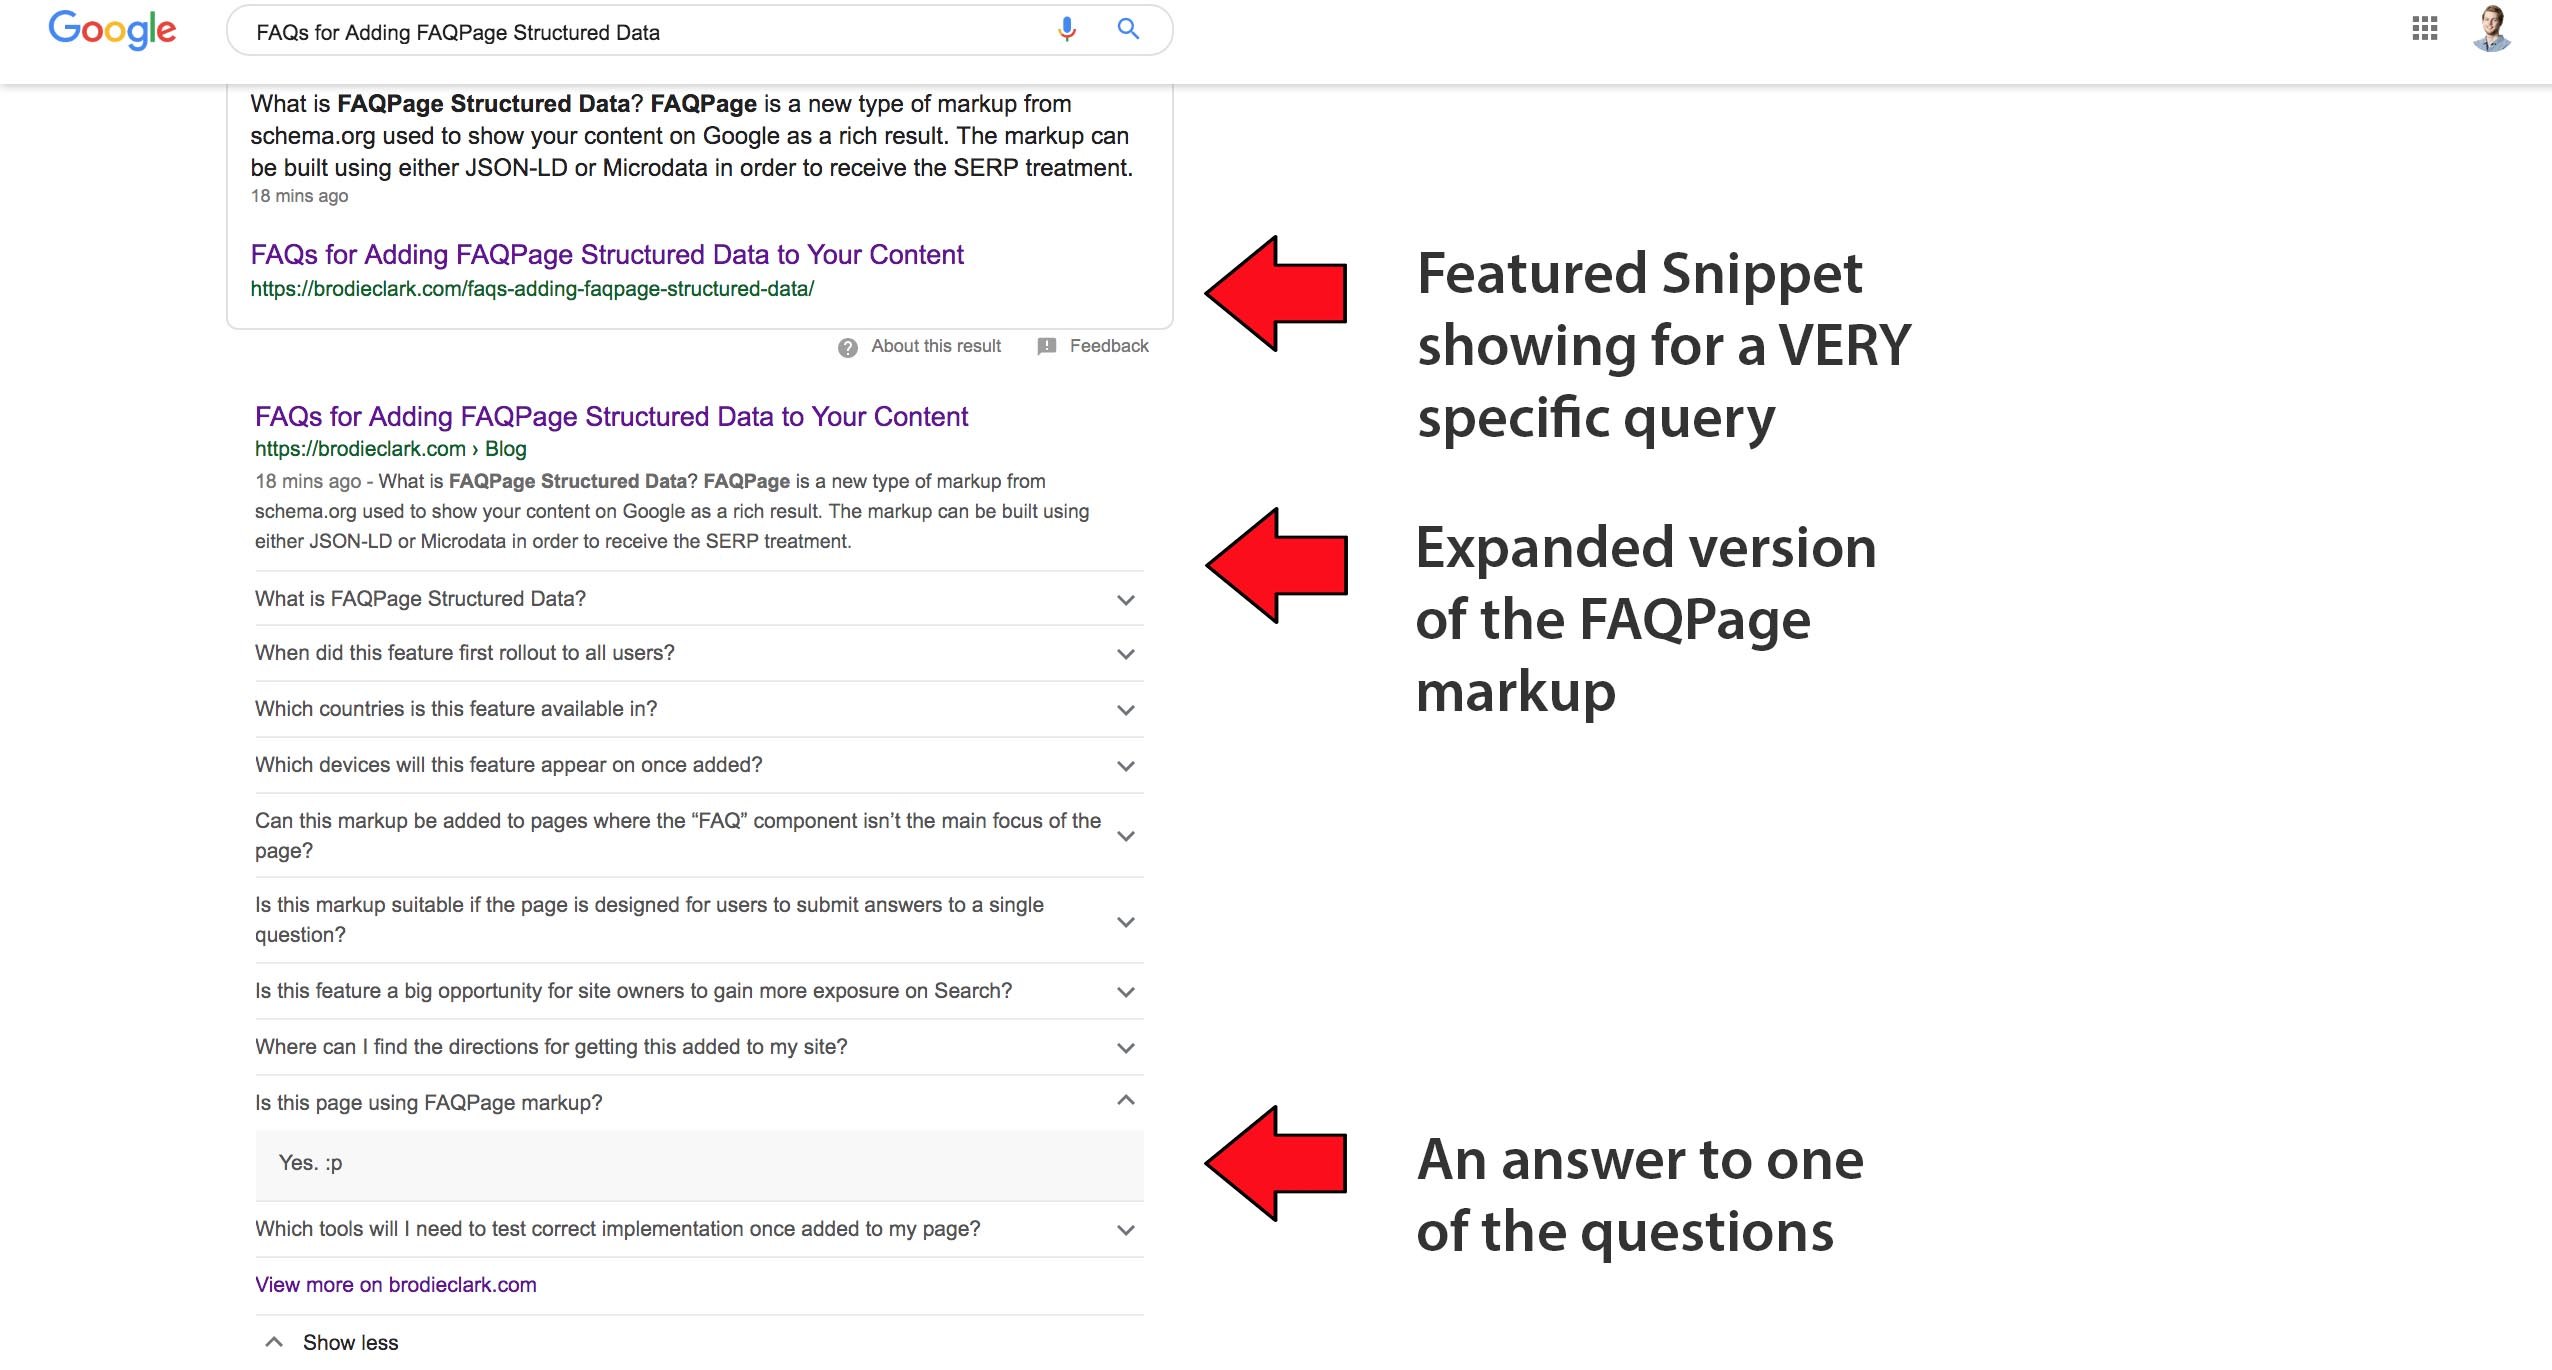 faqs for adding faq schema to a web page